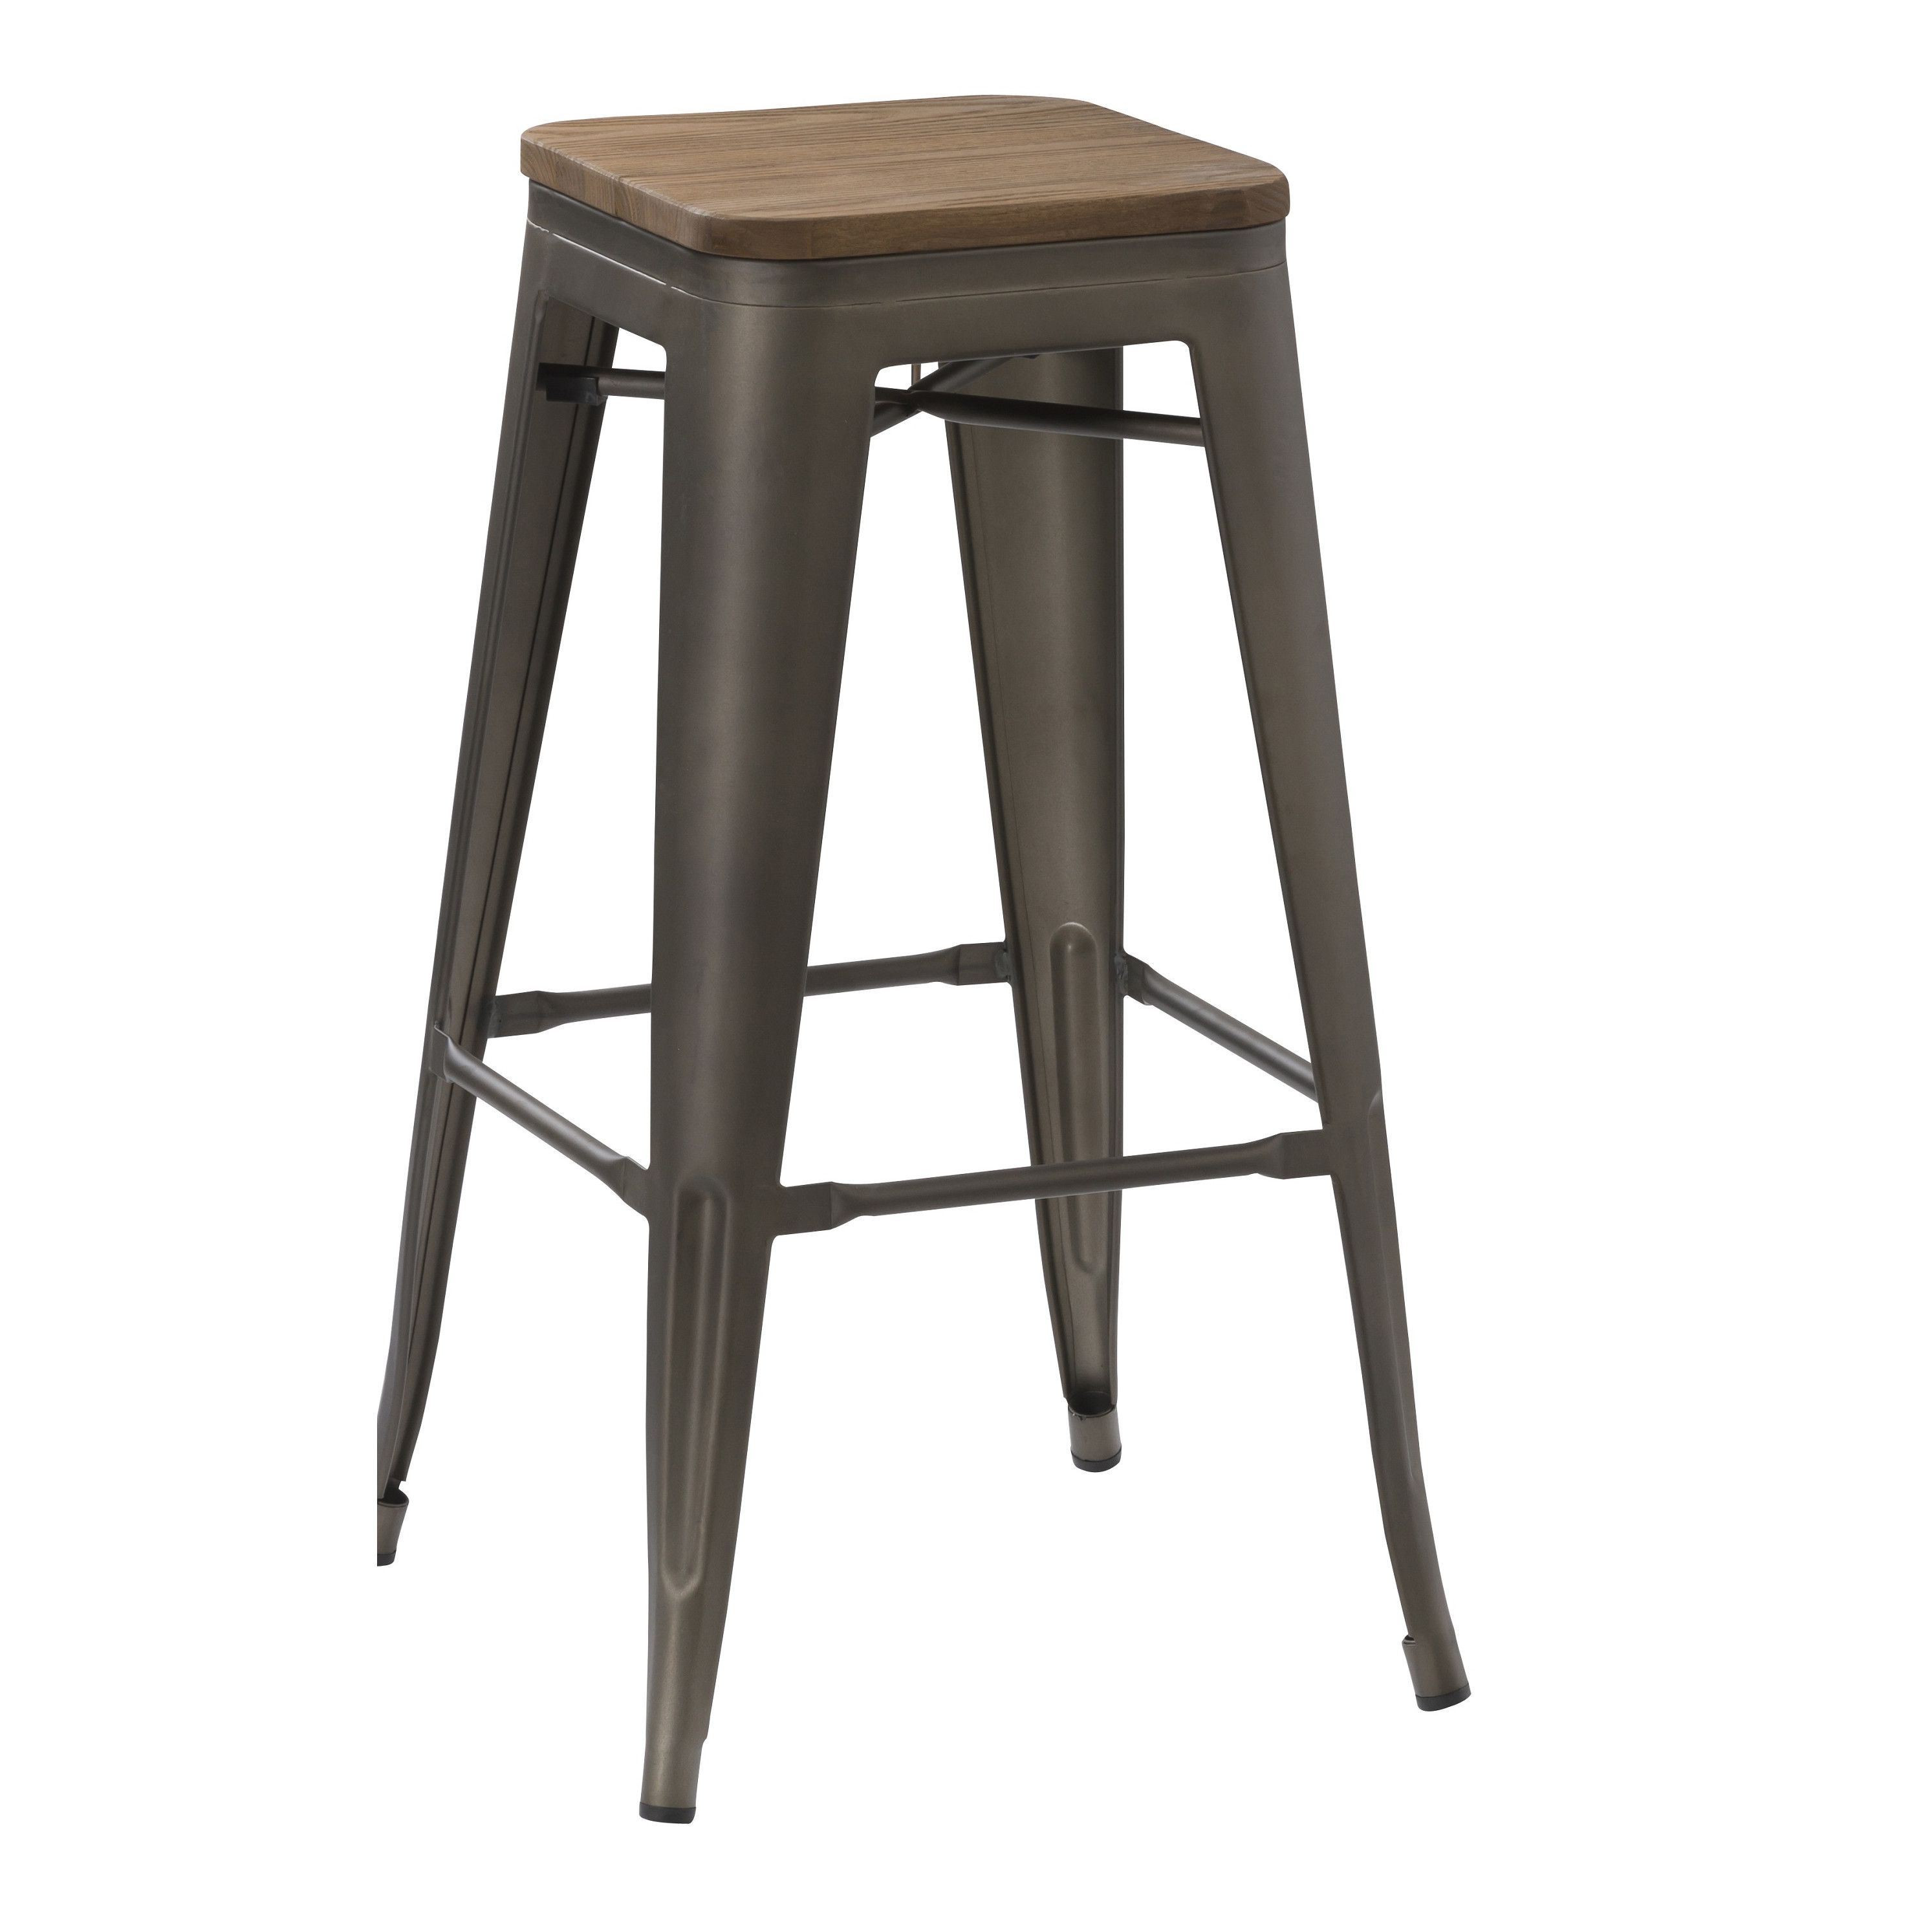 Design Lab MN Dreux Counter Stool   Set Of 4   The Design Lab MN Dreux Counter  Stool   Set Of 4 Captures The Industrial, Chic Look Of The Classic French  ...